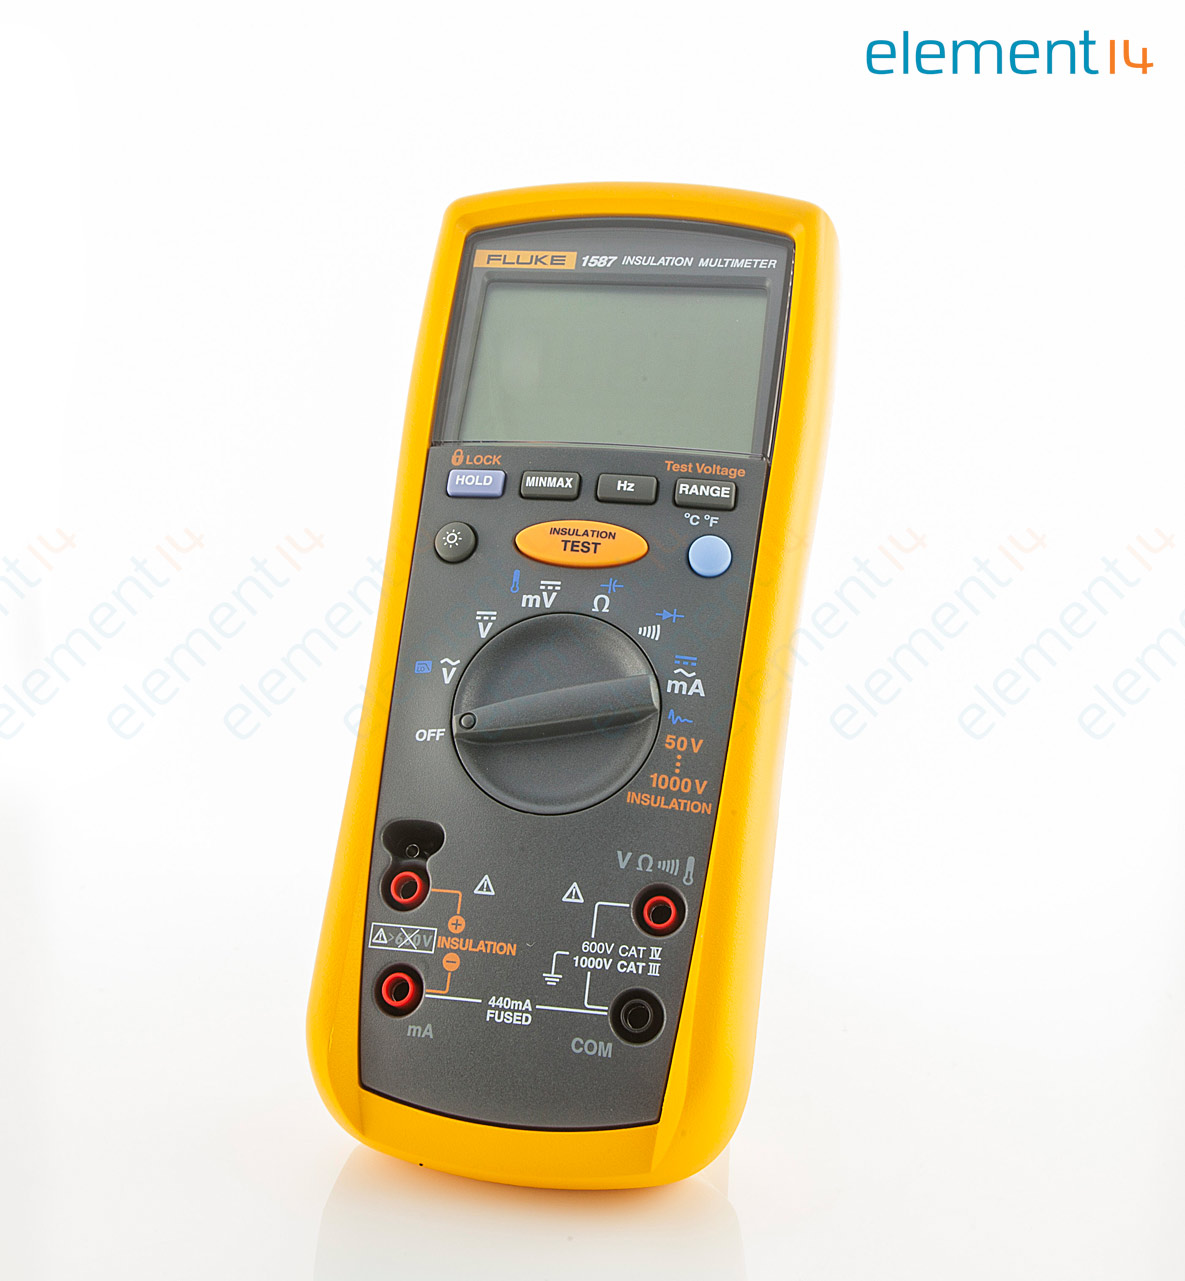 fluke 1587 fluke insulation digital multimeter 6000 count true rms rh uk farnell com Fluke 77 User Manual fluke 1587 owners manual